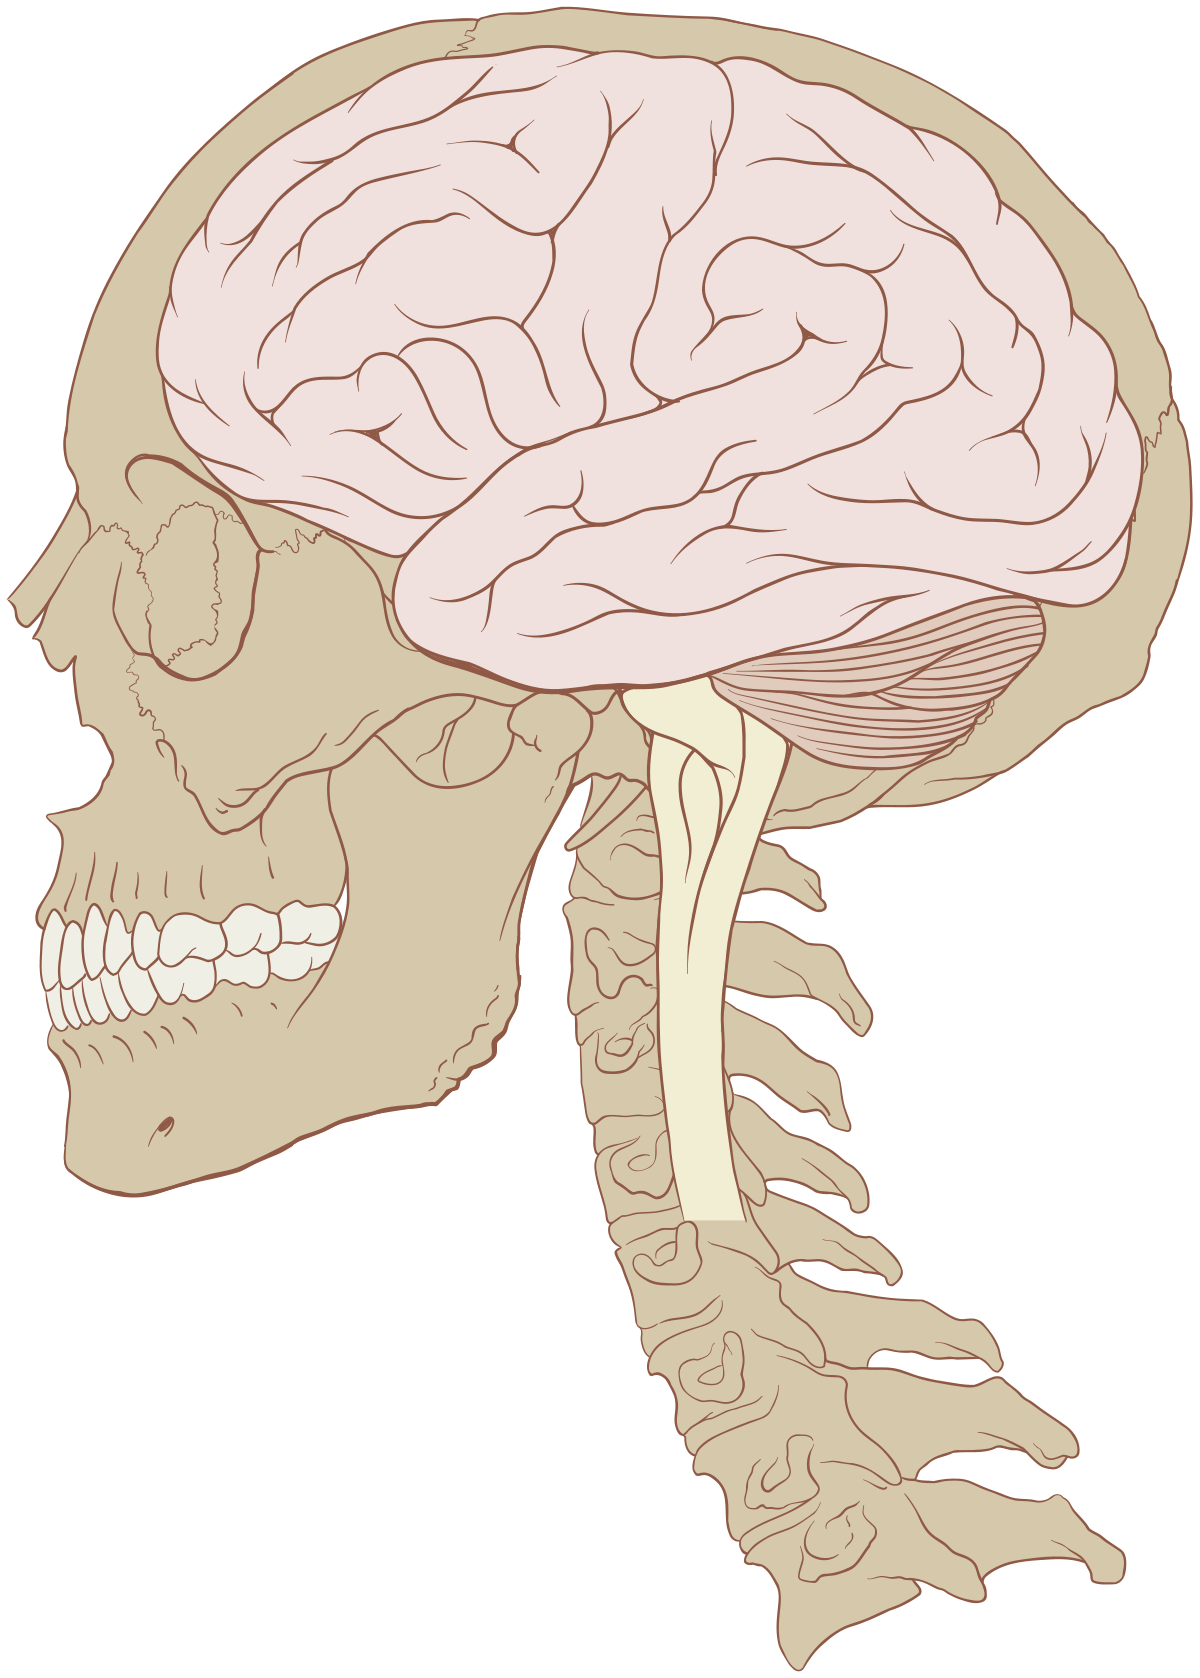 Aristotle drawing body. Human brain wikipedia